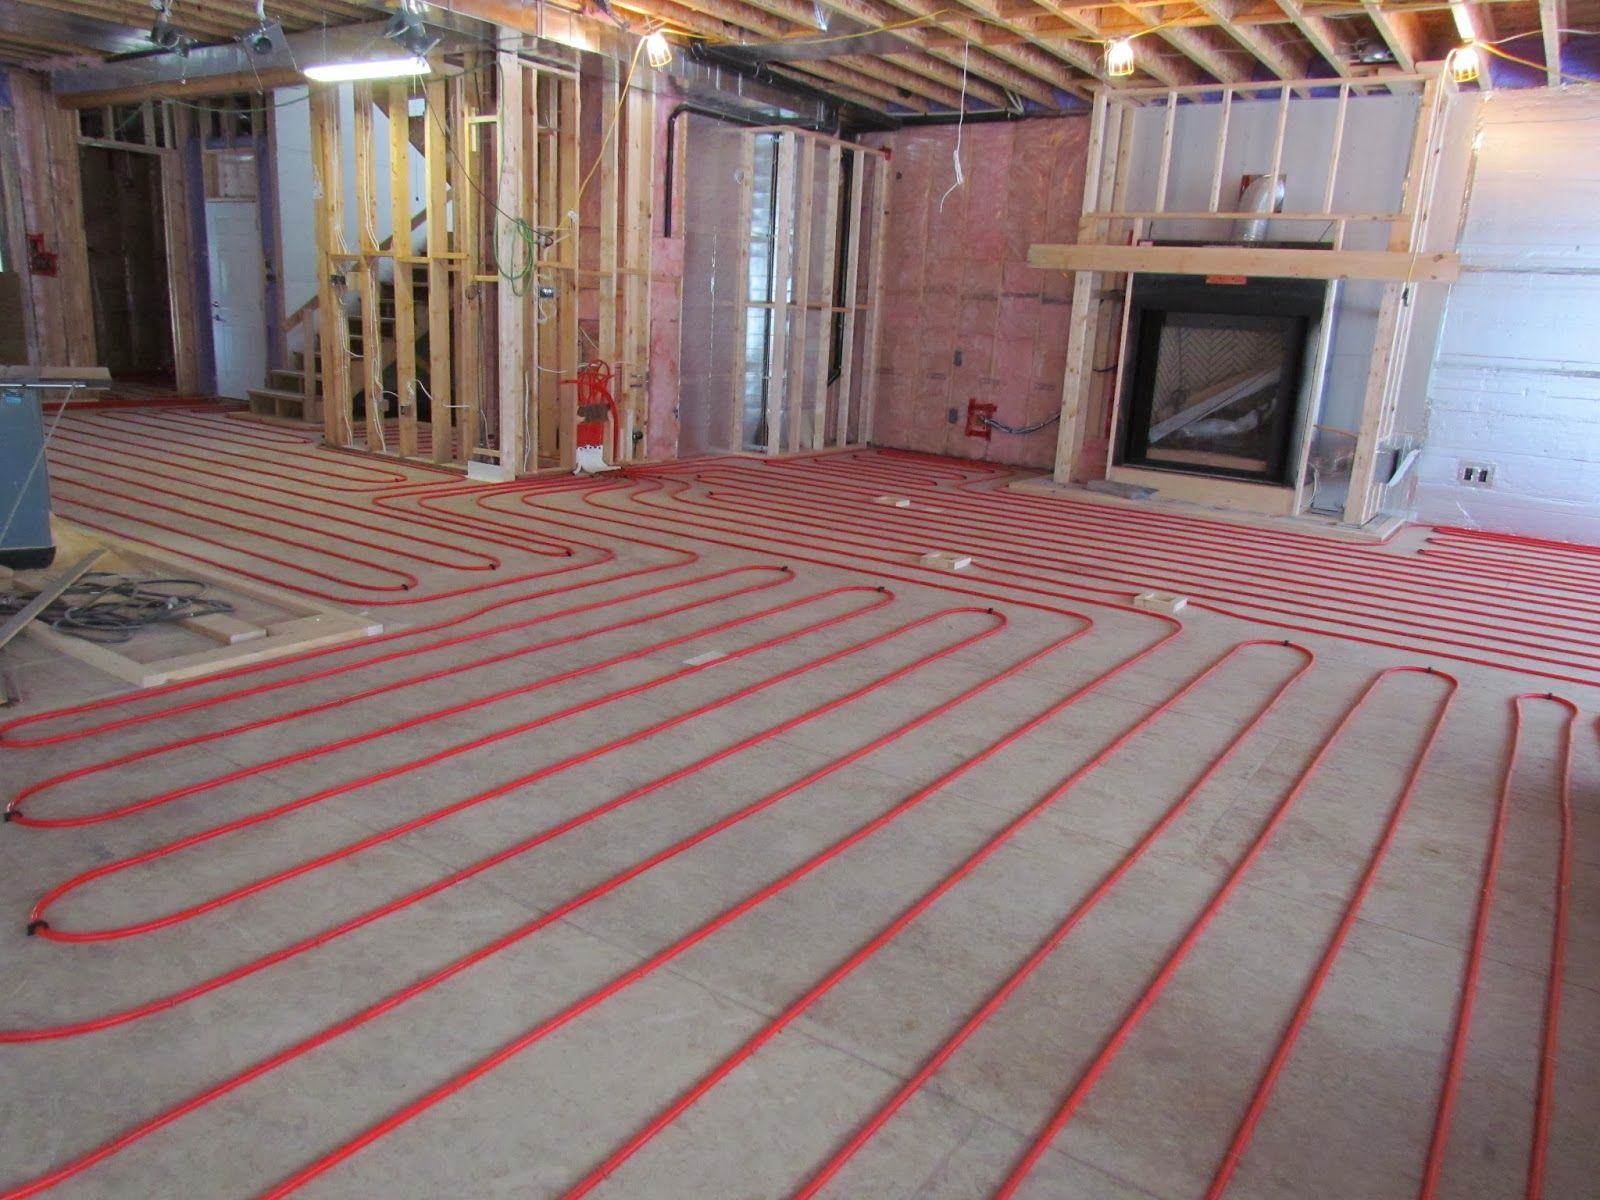 Radiant In Floor Heating In The Basement Radiant Floor Heating Heated Tile Floor Floor Heating Systems